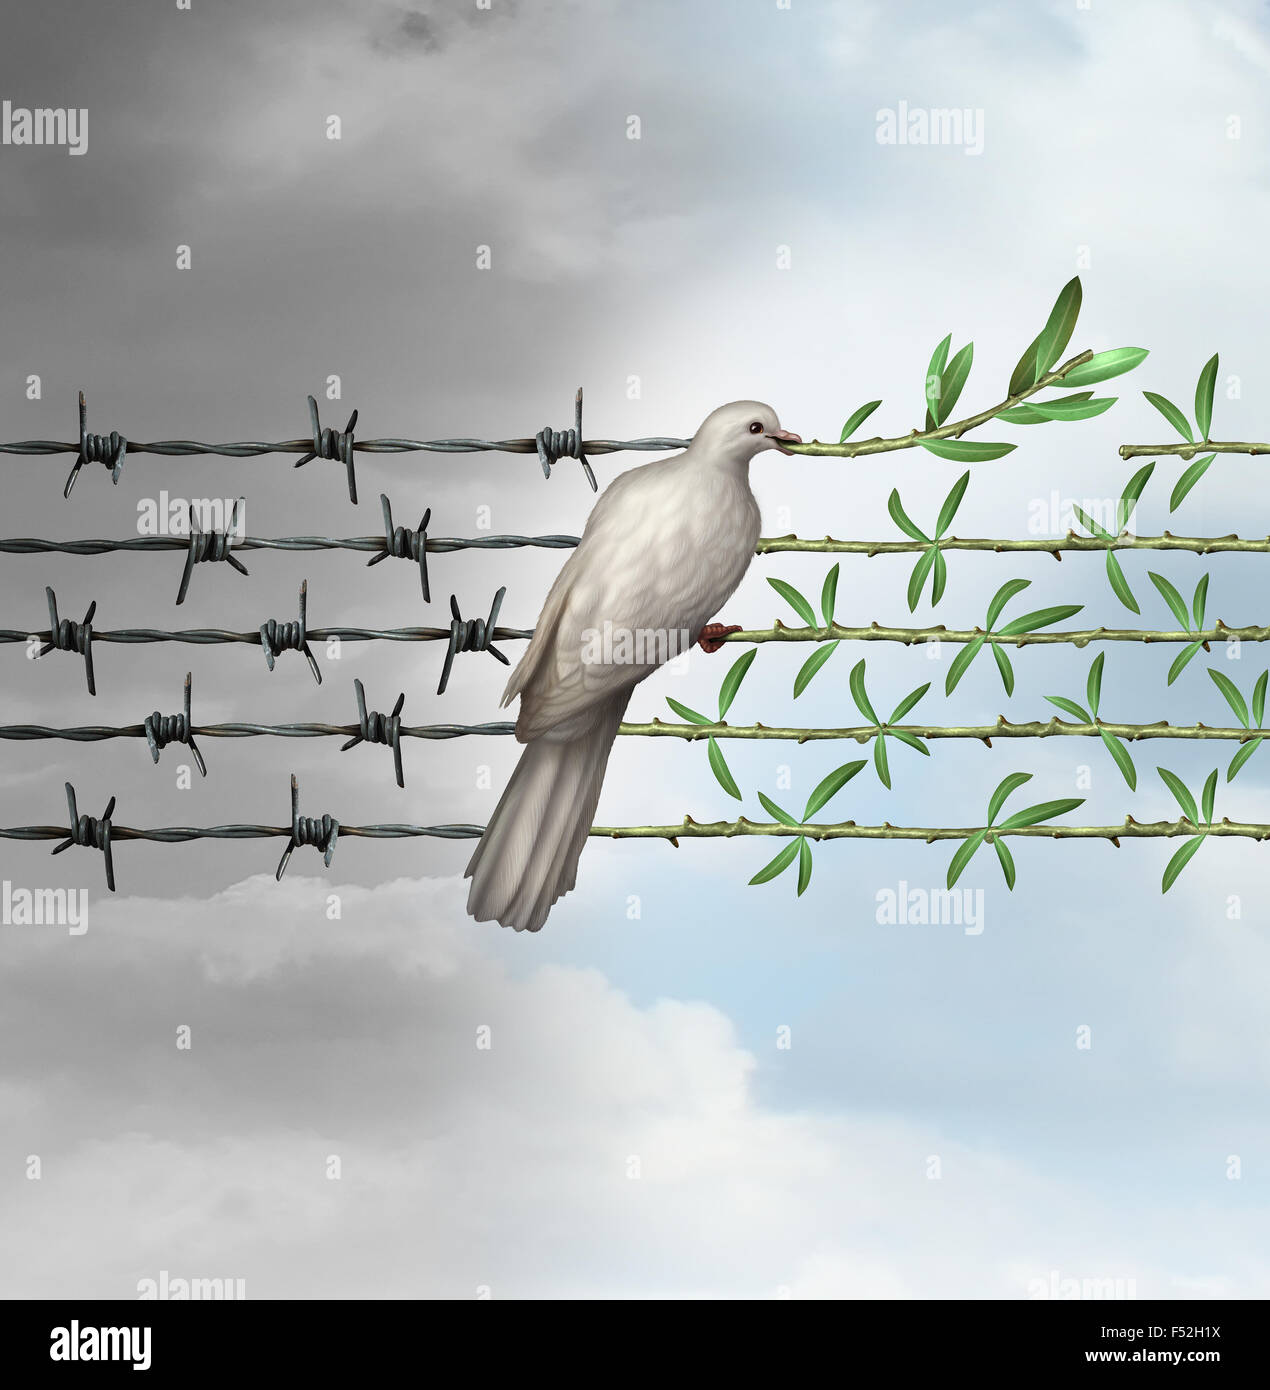 Hope concept as a dove perched on barbed wire transforming into an olive branch as a symbol for good will towards - Stock Image